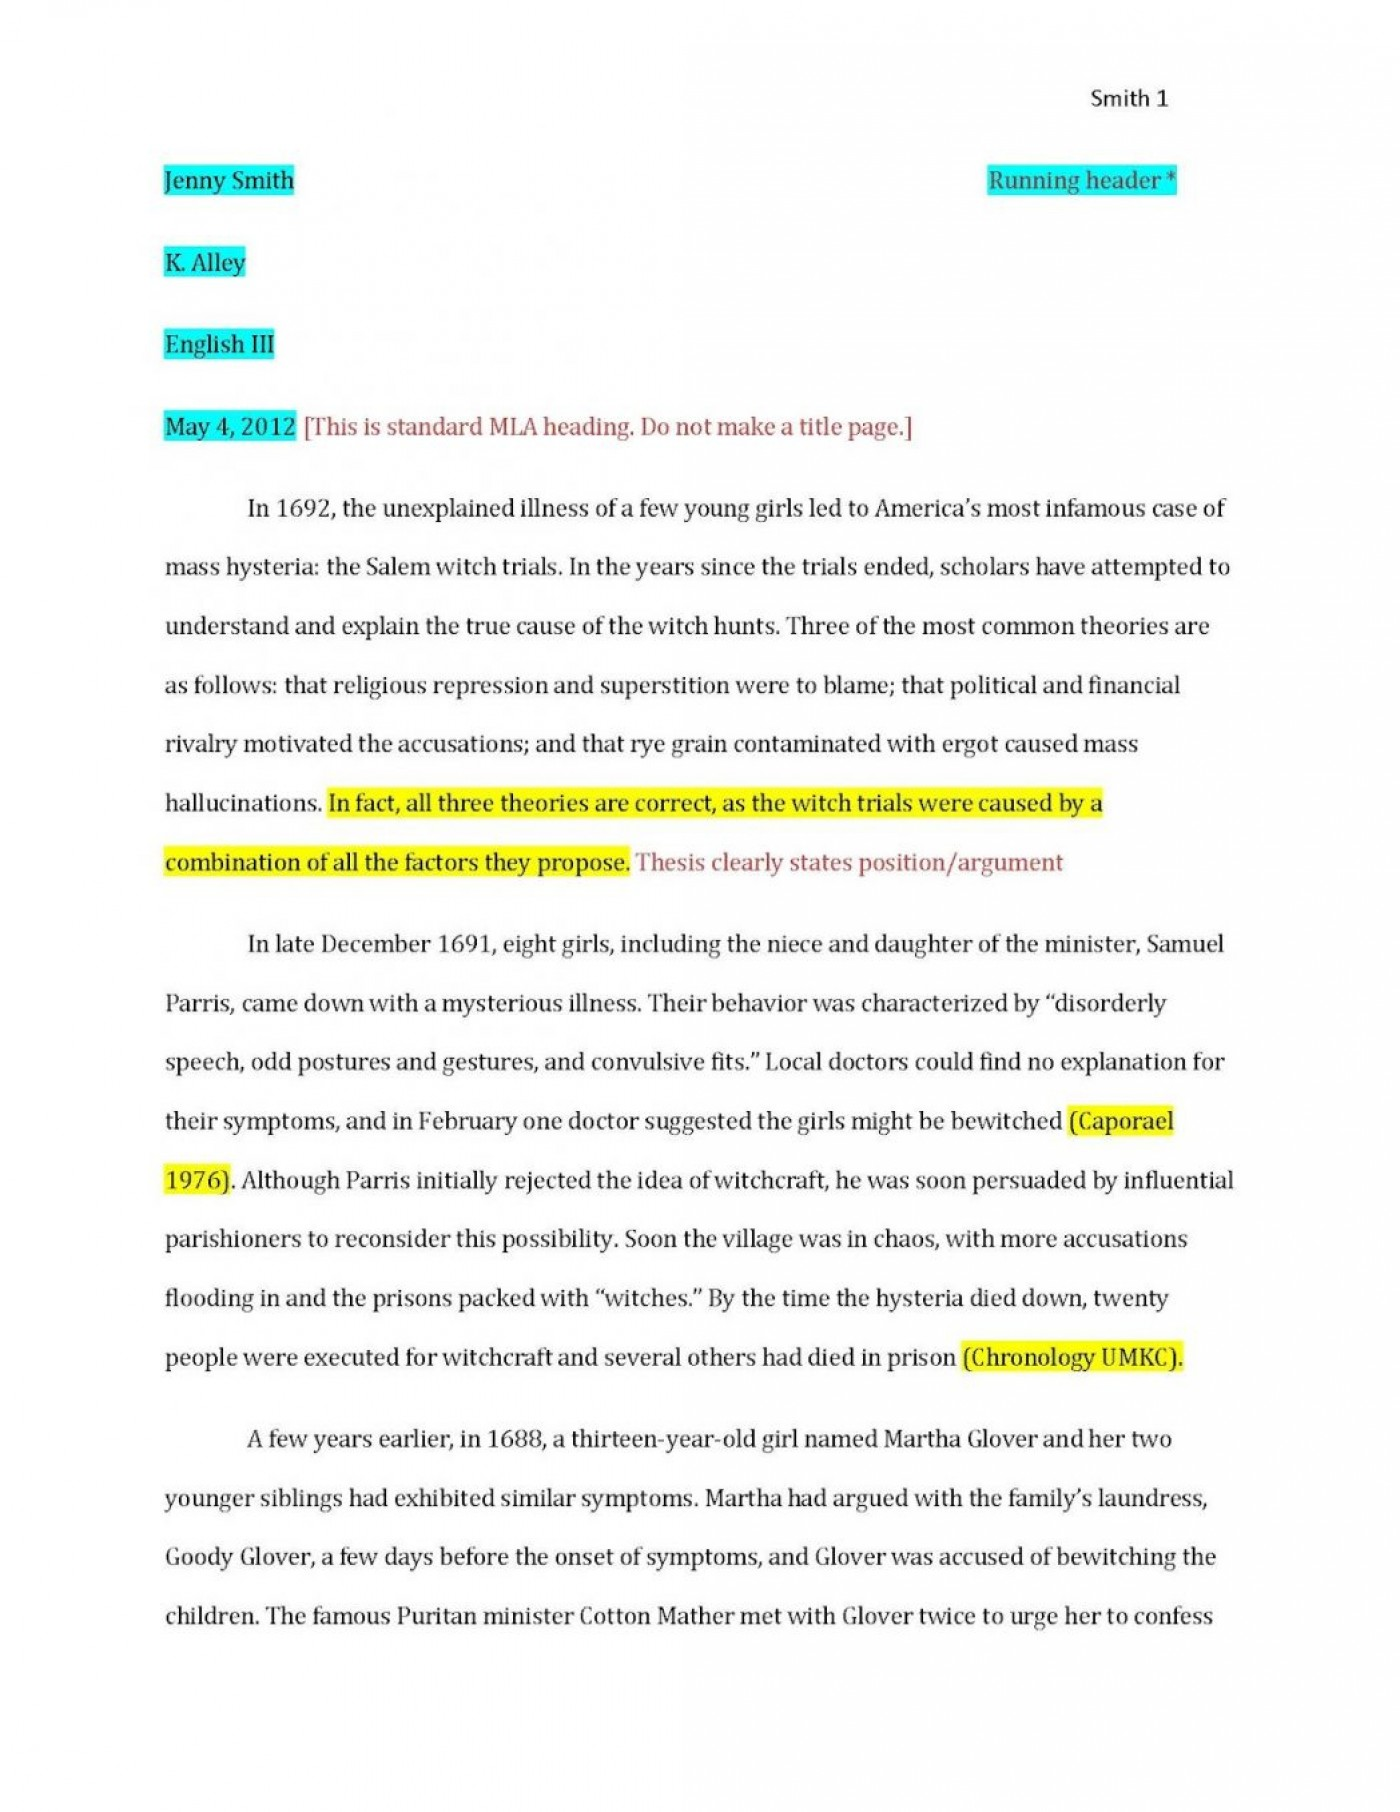 002 Mla Format Essay Generator Author Date References System Ready Set Automaticpaper P 1048x1357 Wondrous Paper Software Download Title Reddit Free 1400